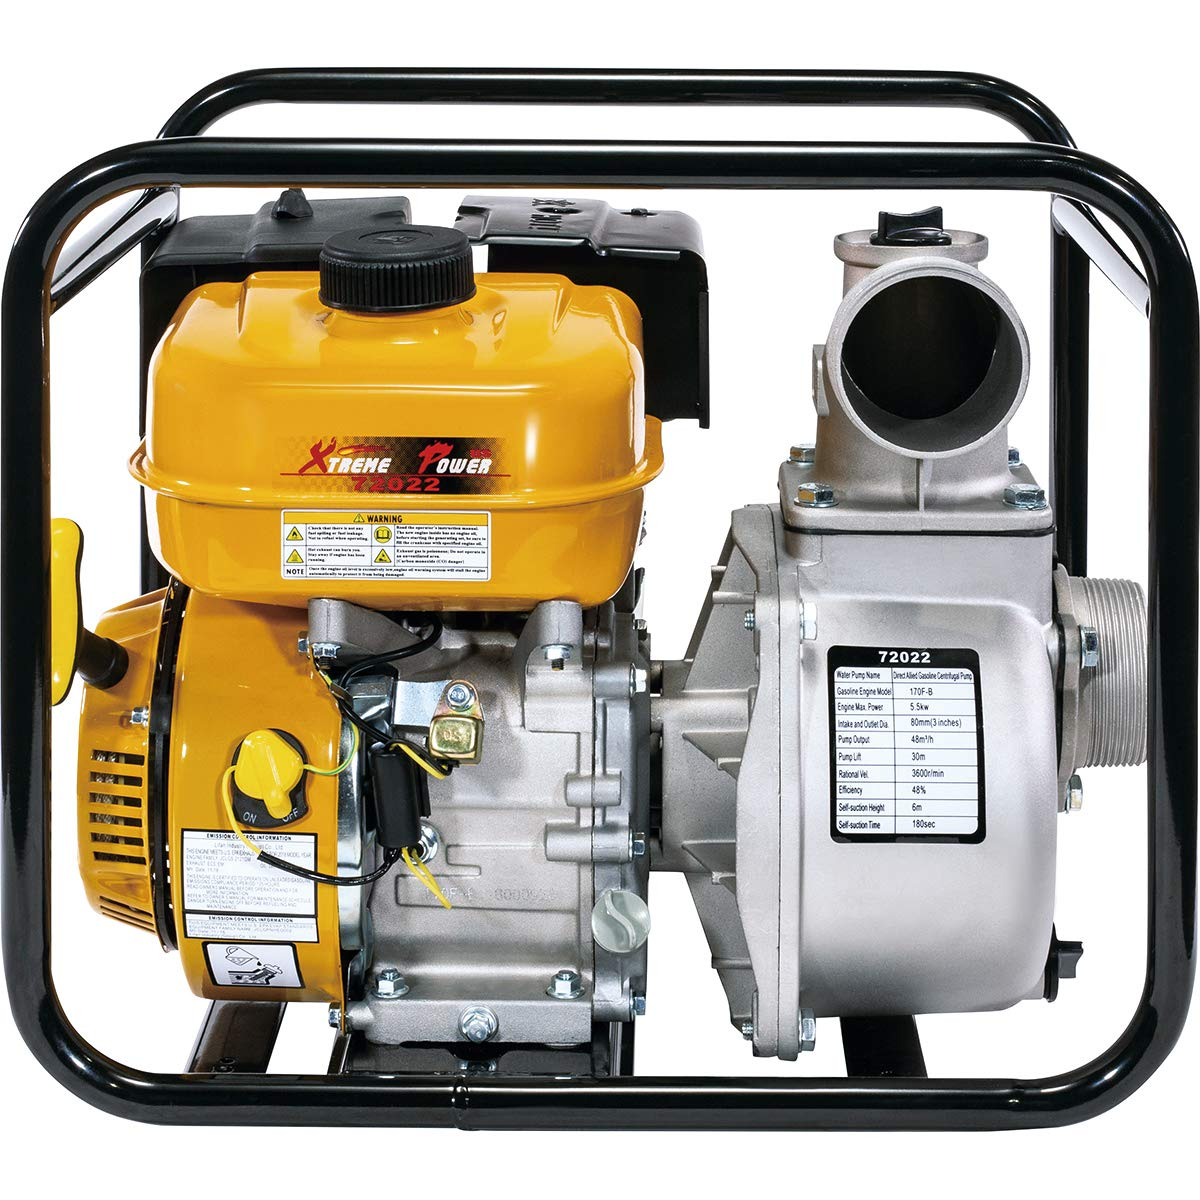 XtremepowerUS 7HP 3'' inch Gas Water Pump Gas-Powered Transfer Pump Lifan Engine Portable Gasoline Recoil, Yellow by XtremepowerUS